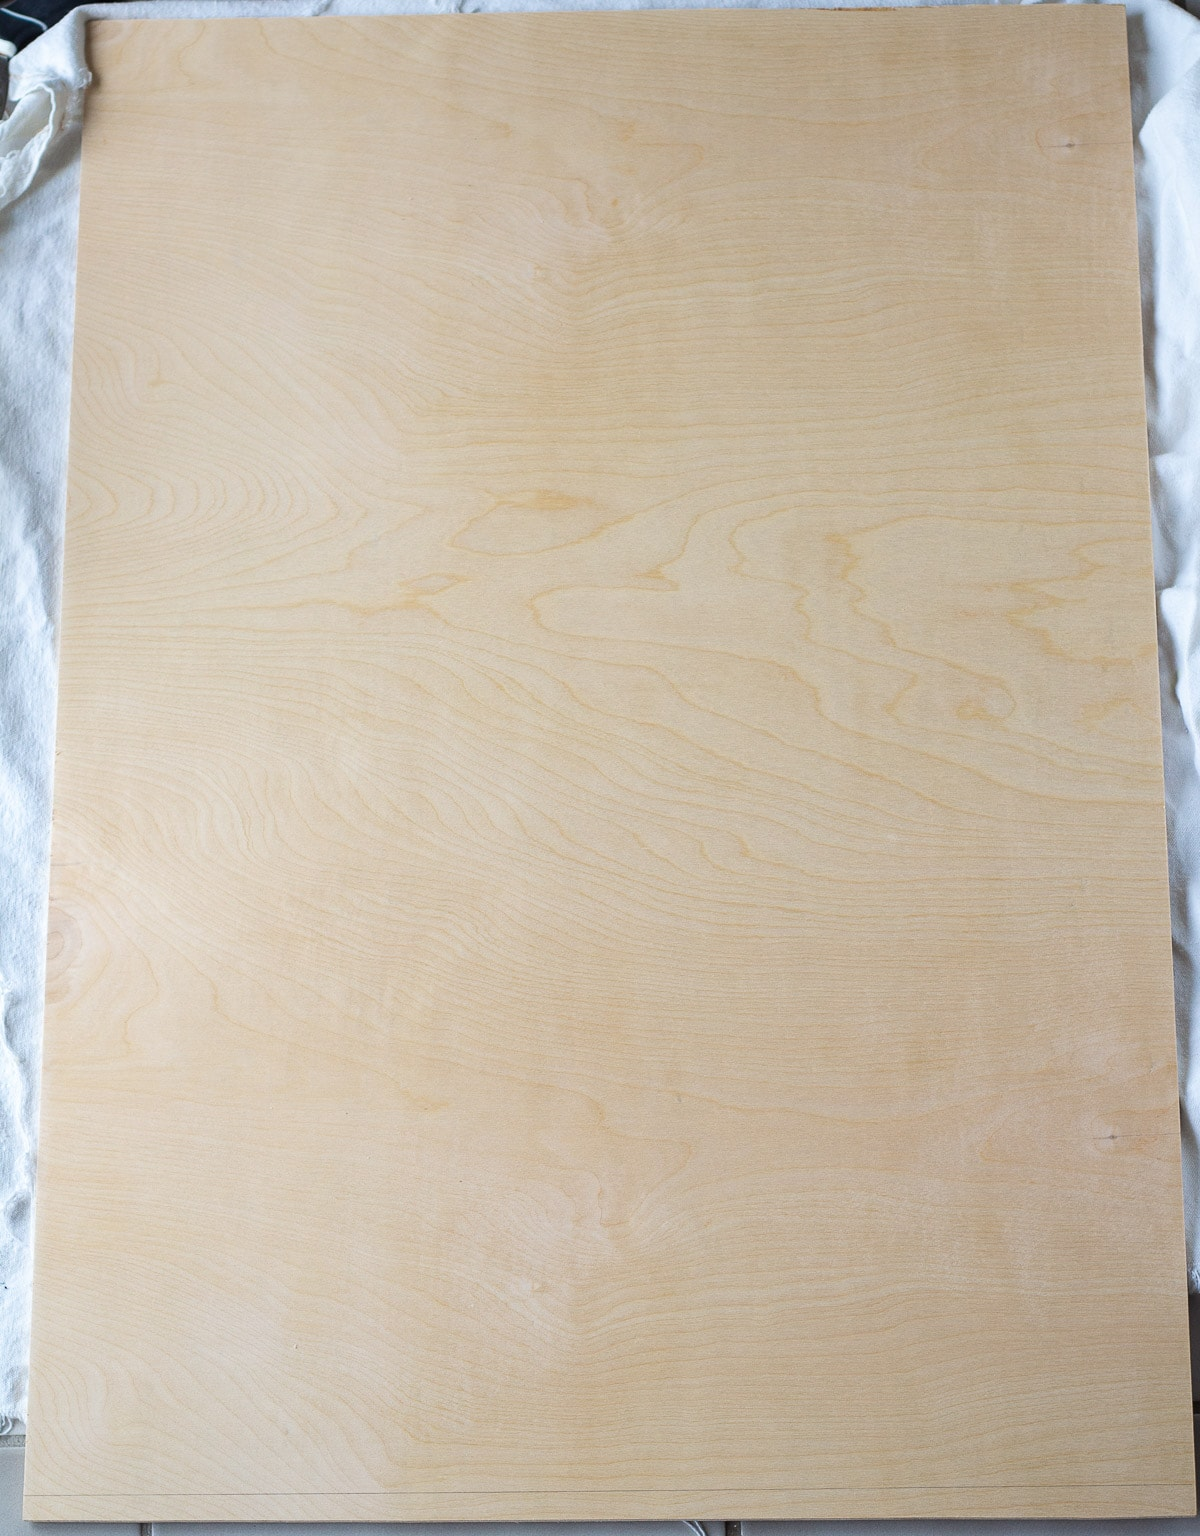 A large plywood board.